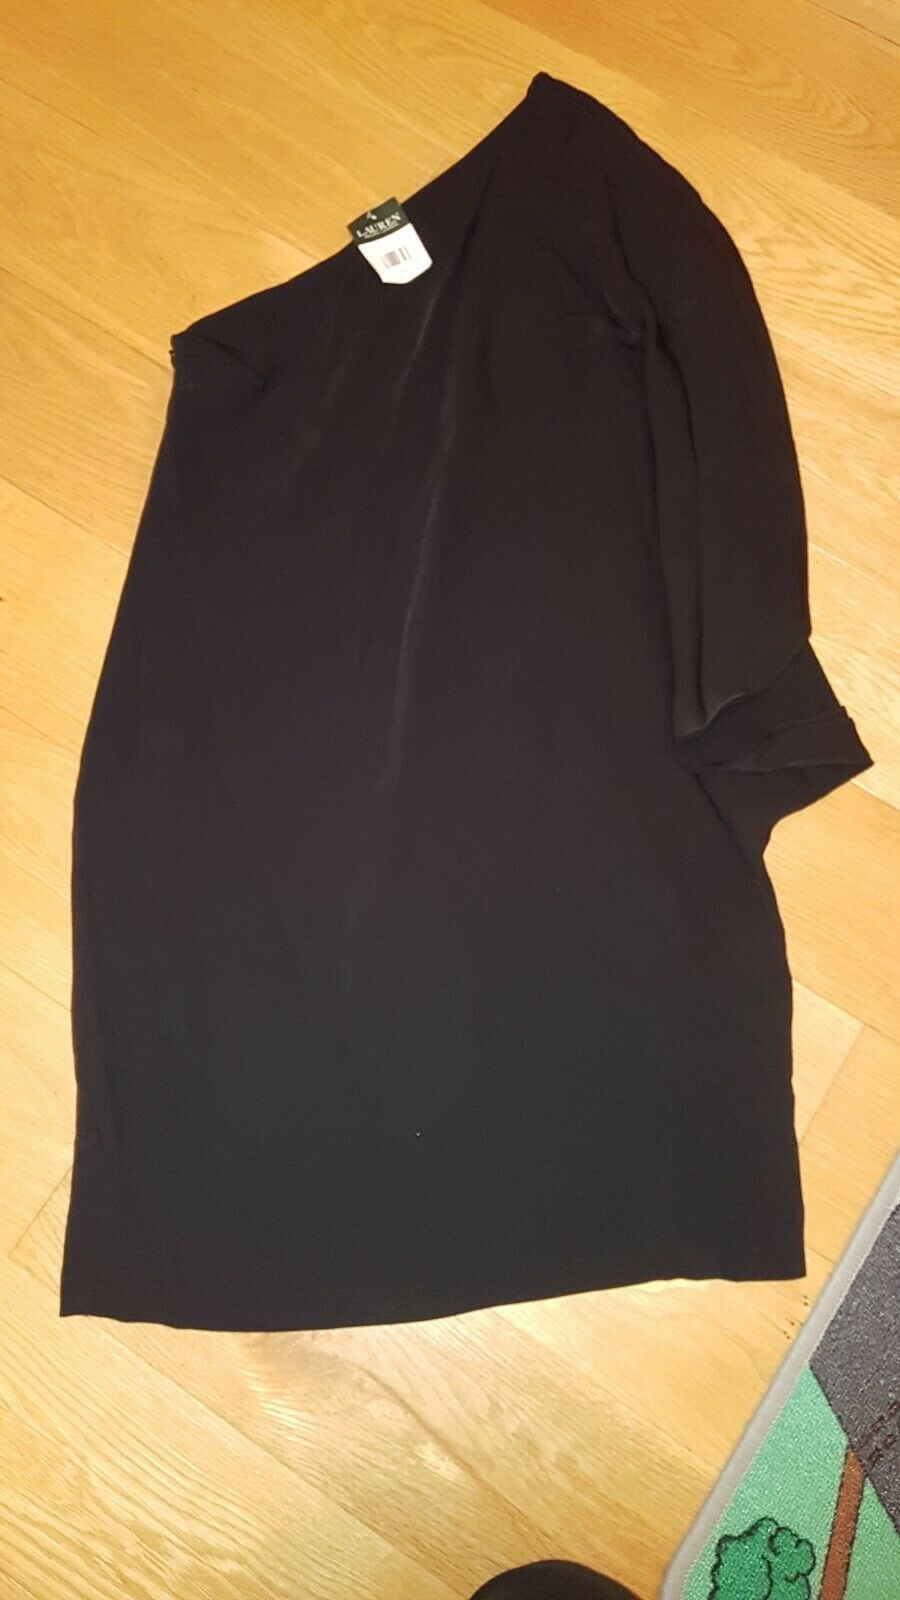 Lauren by Ralph Lauren kleid Schwarz party One-Shoulder neu Größe 34 36